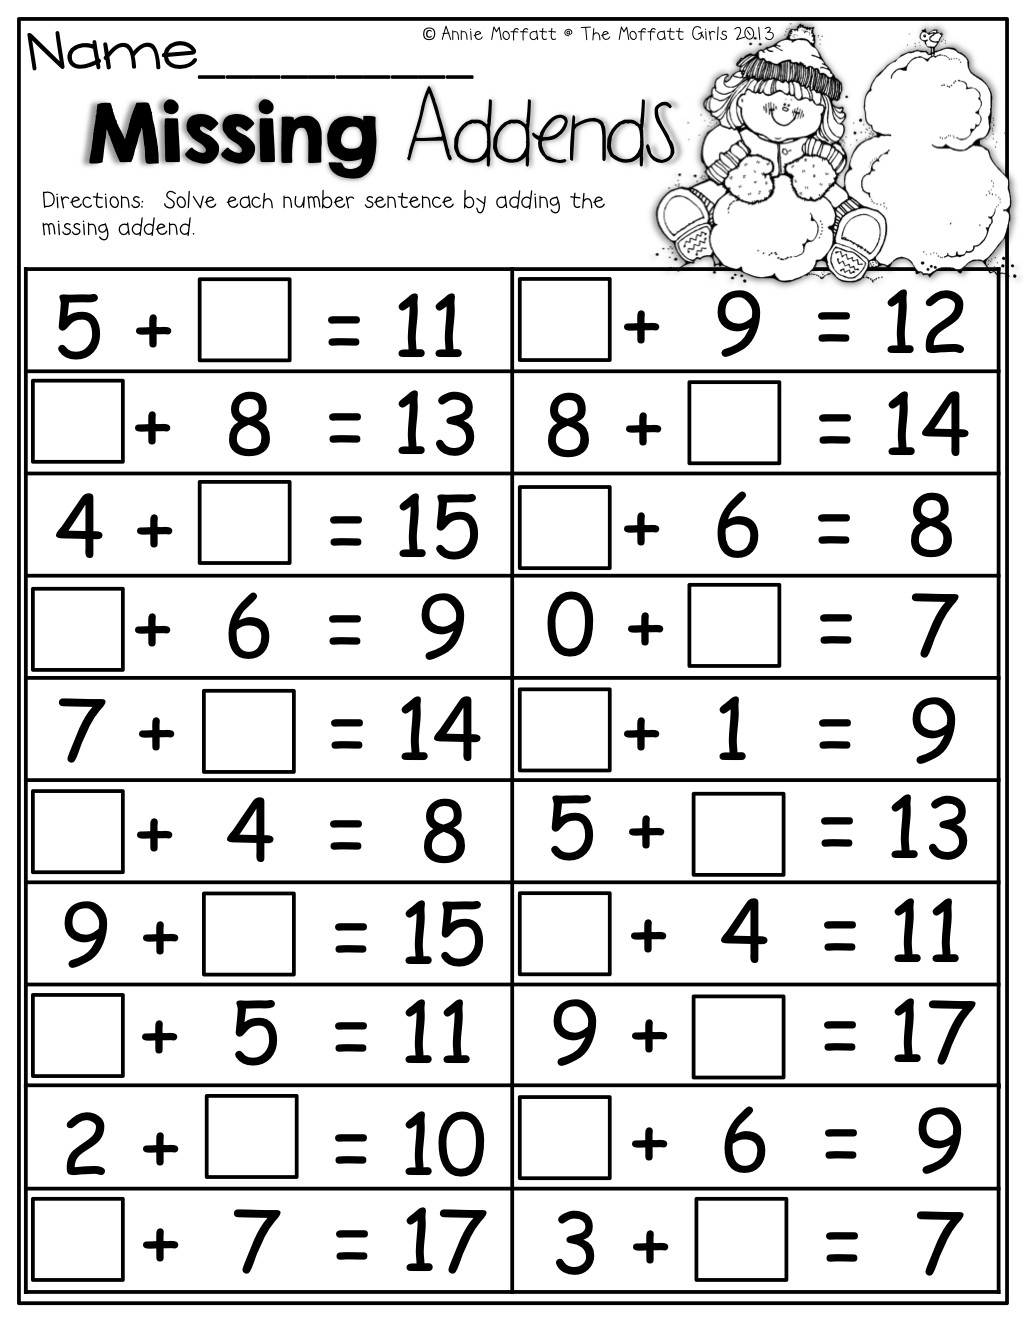 Missing Addend Worksheets 1st Grade Math Worksheets with Missing Addends